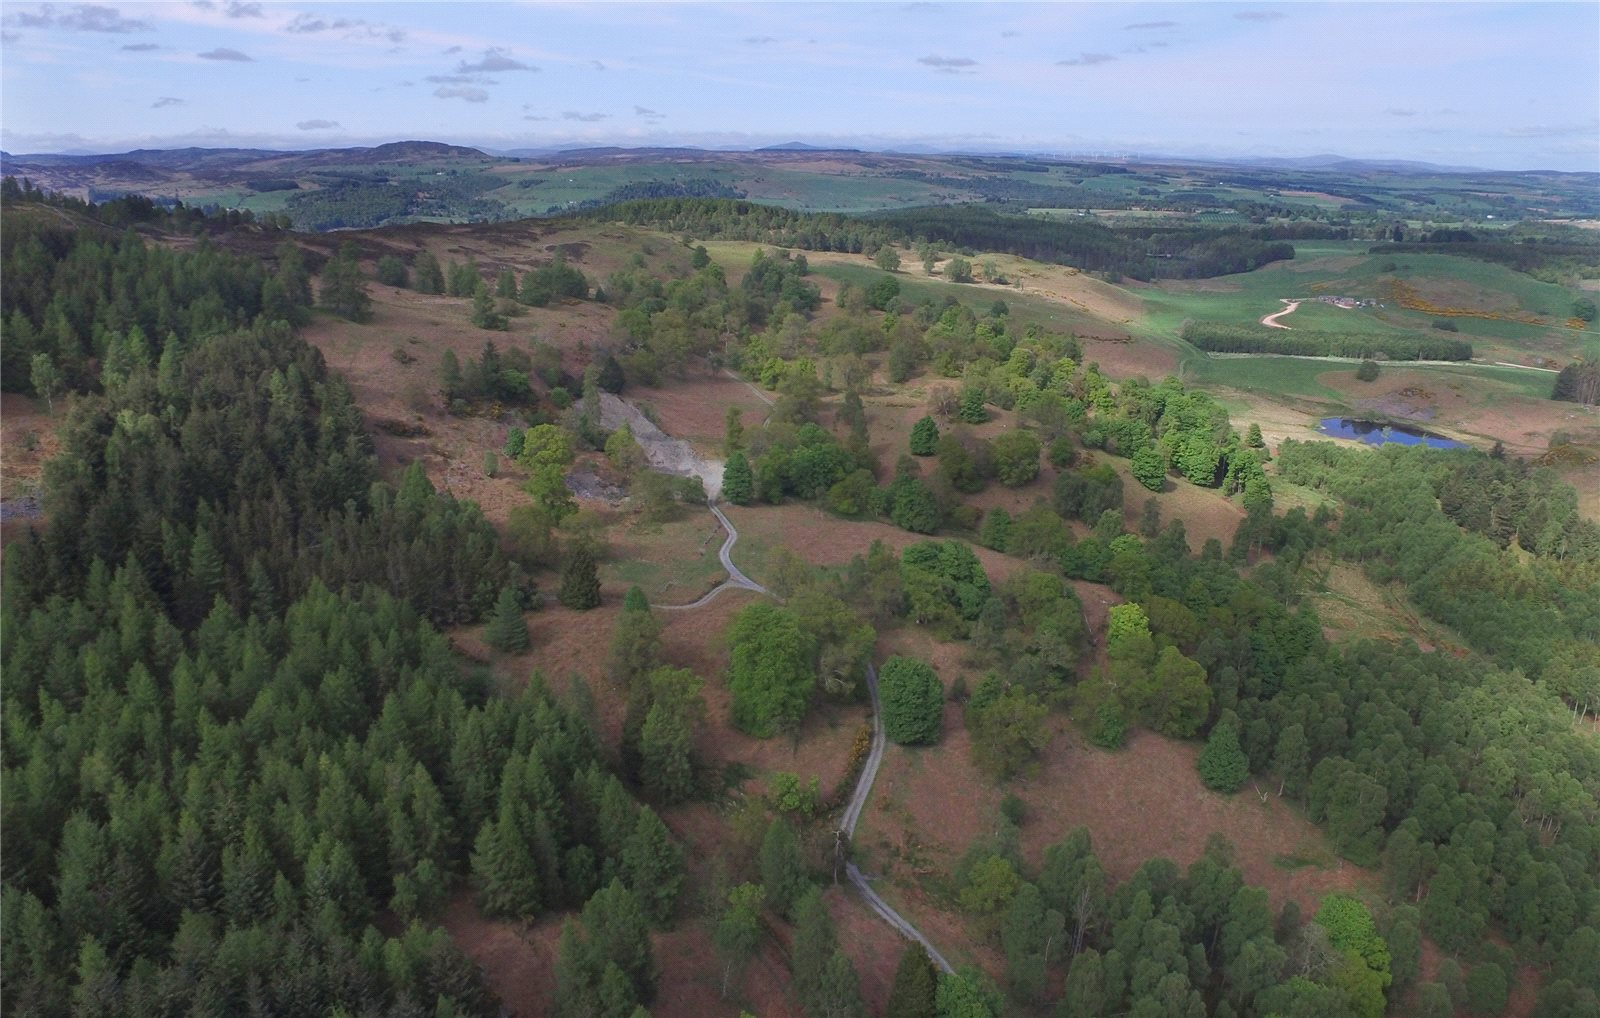 Apartments / Residences for Sale at Dunkeld, Perthshire, PH8 Perthshire, Scotland